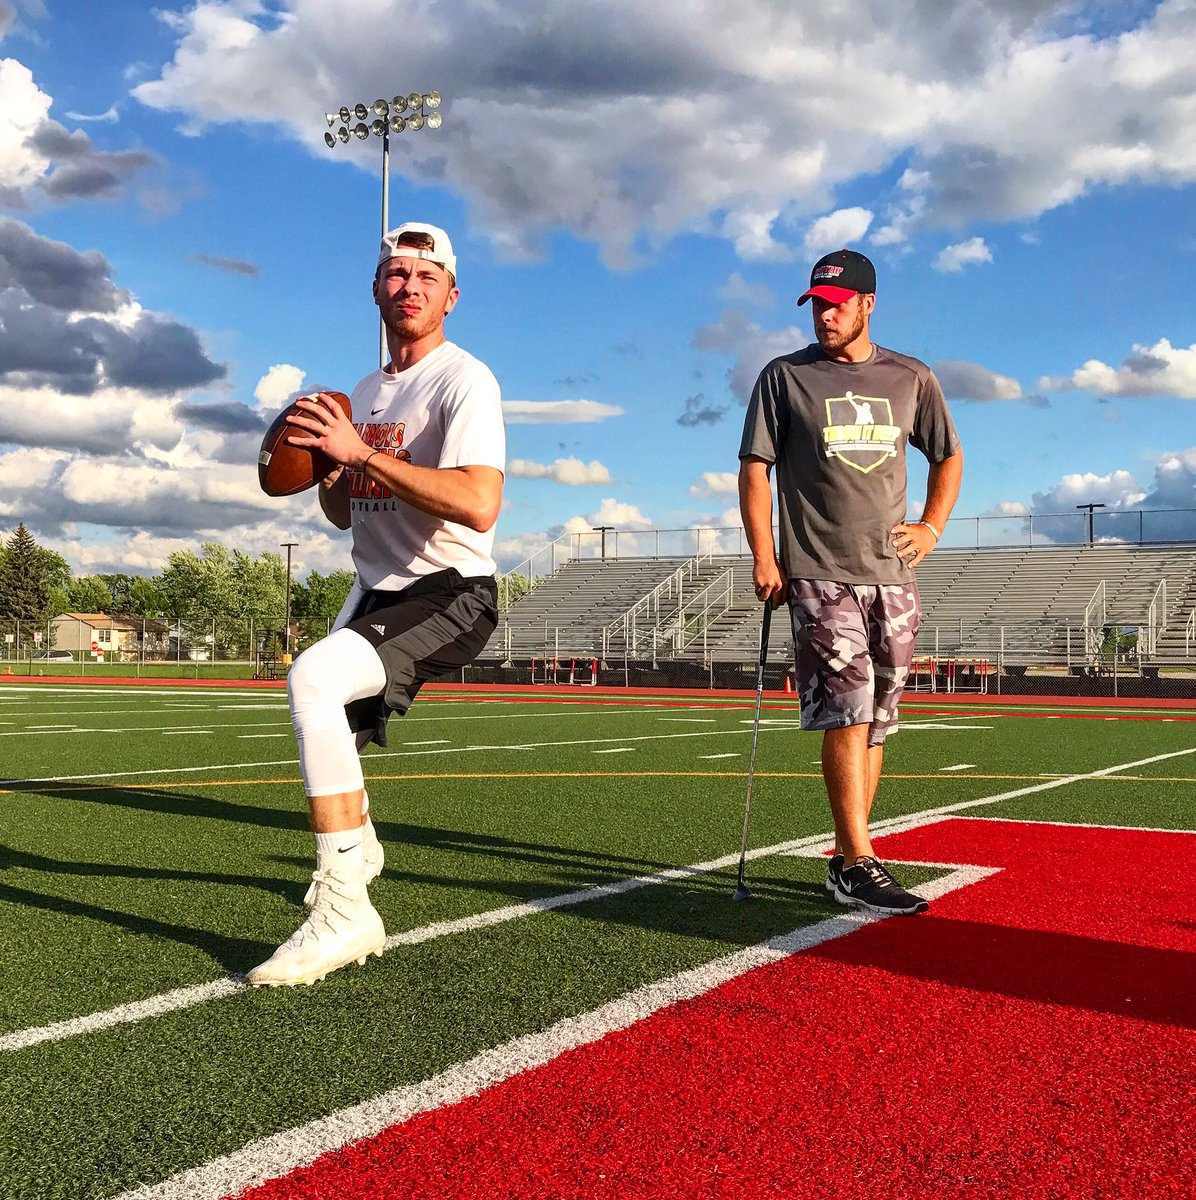 Wouldn&#39;t want to end the day any other way  #TID #QB #WR #Football <br>http://pic.twitter.com/MleaENl7zi &ndash; à Mundelein High School